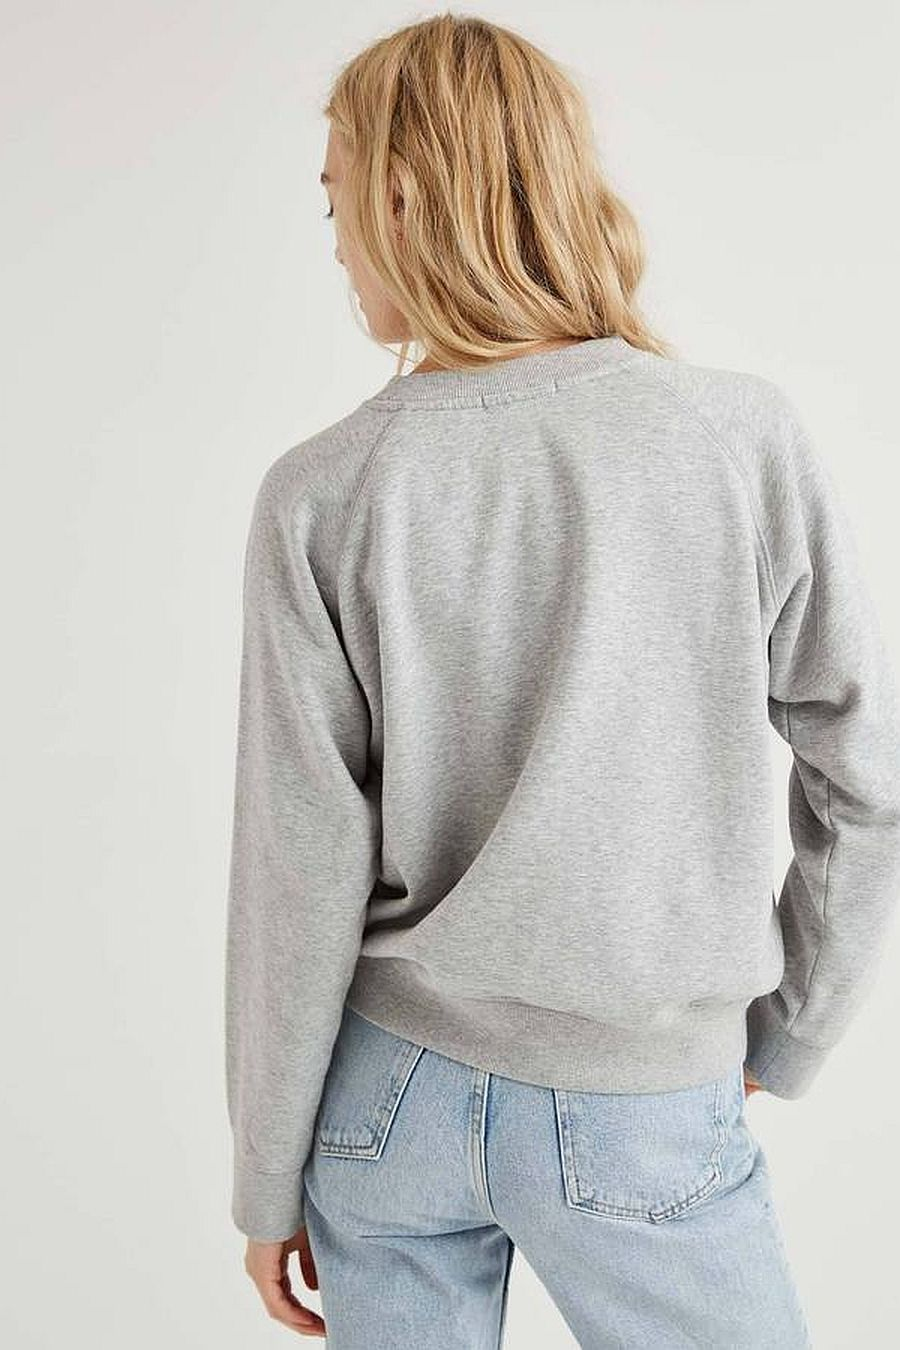 Richer Poorer Fleece Sweatshirt - Grey